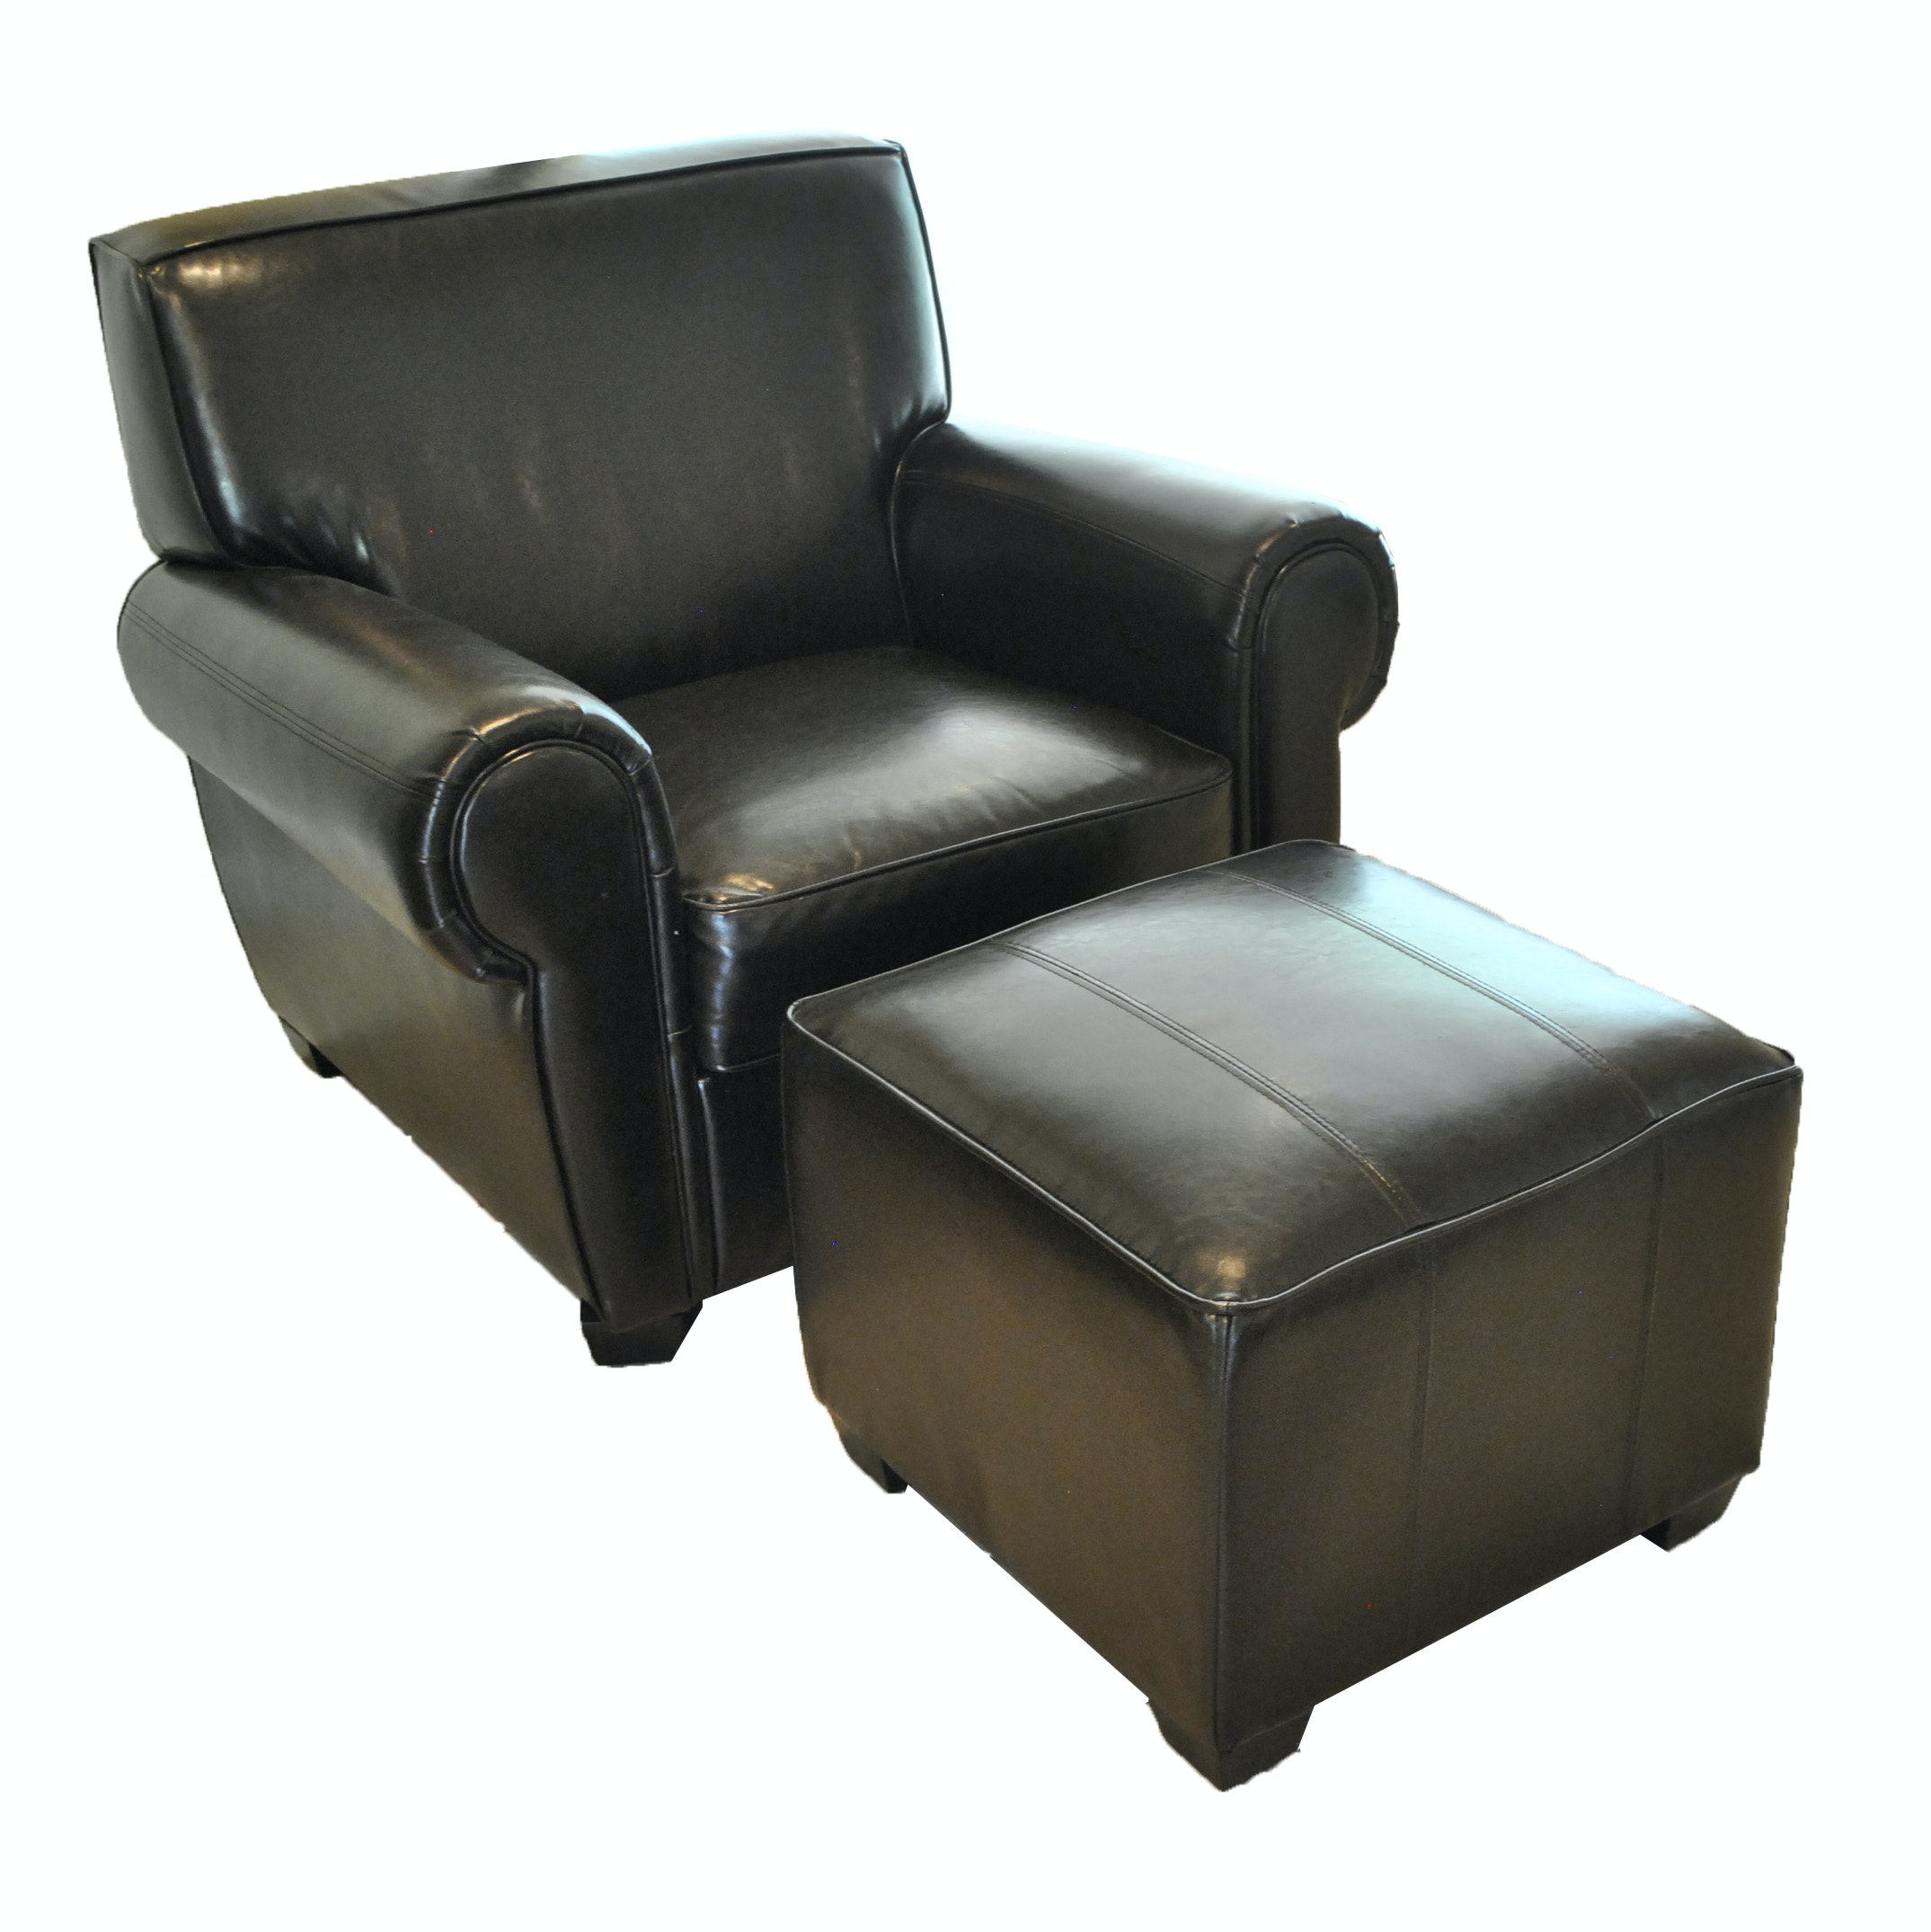 Upholstered Lounge Chair and Ottoman